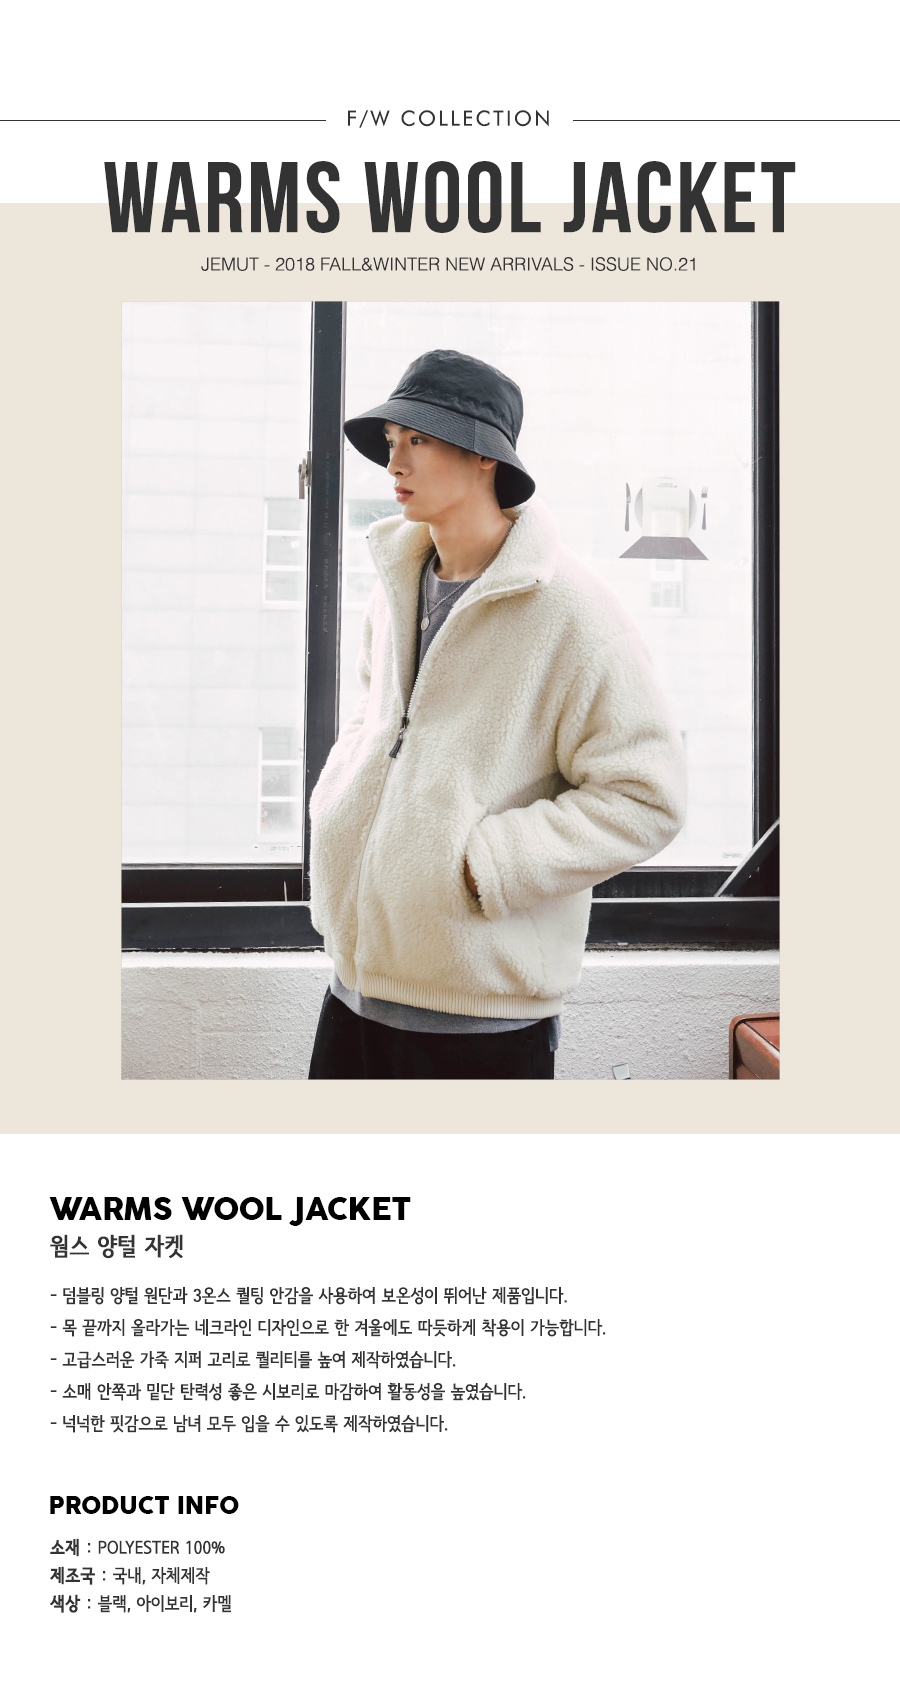 20181015_warms_wool_jacket_title_kj.jpg